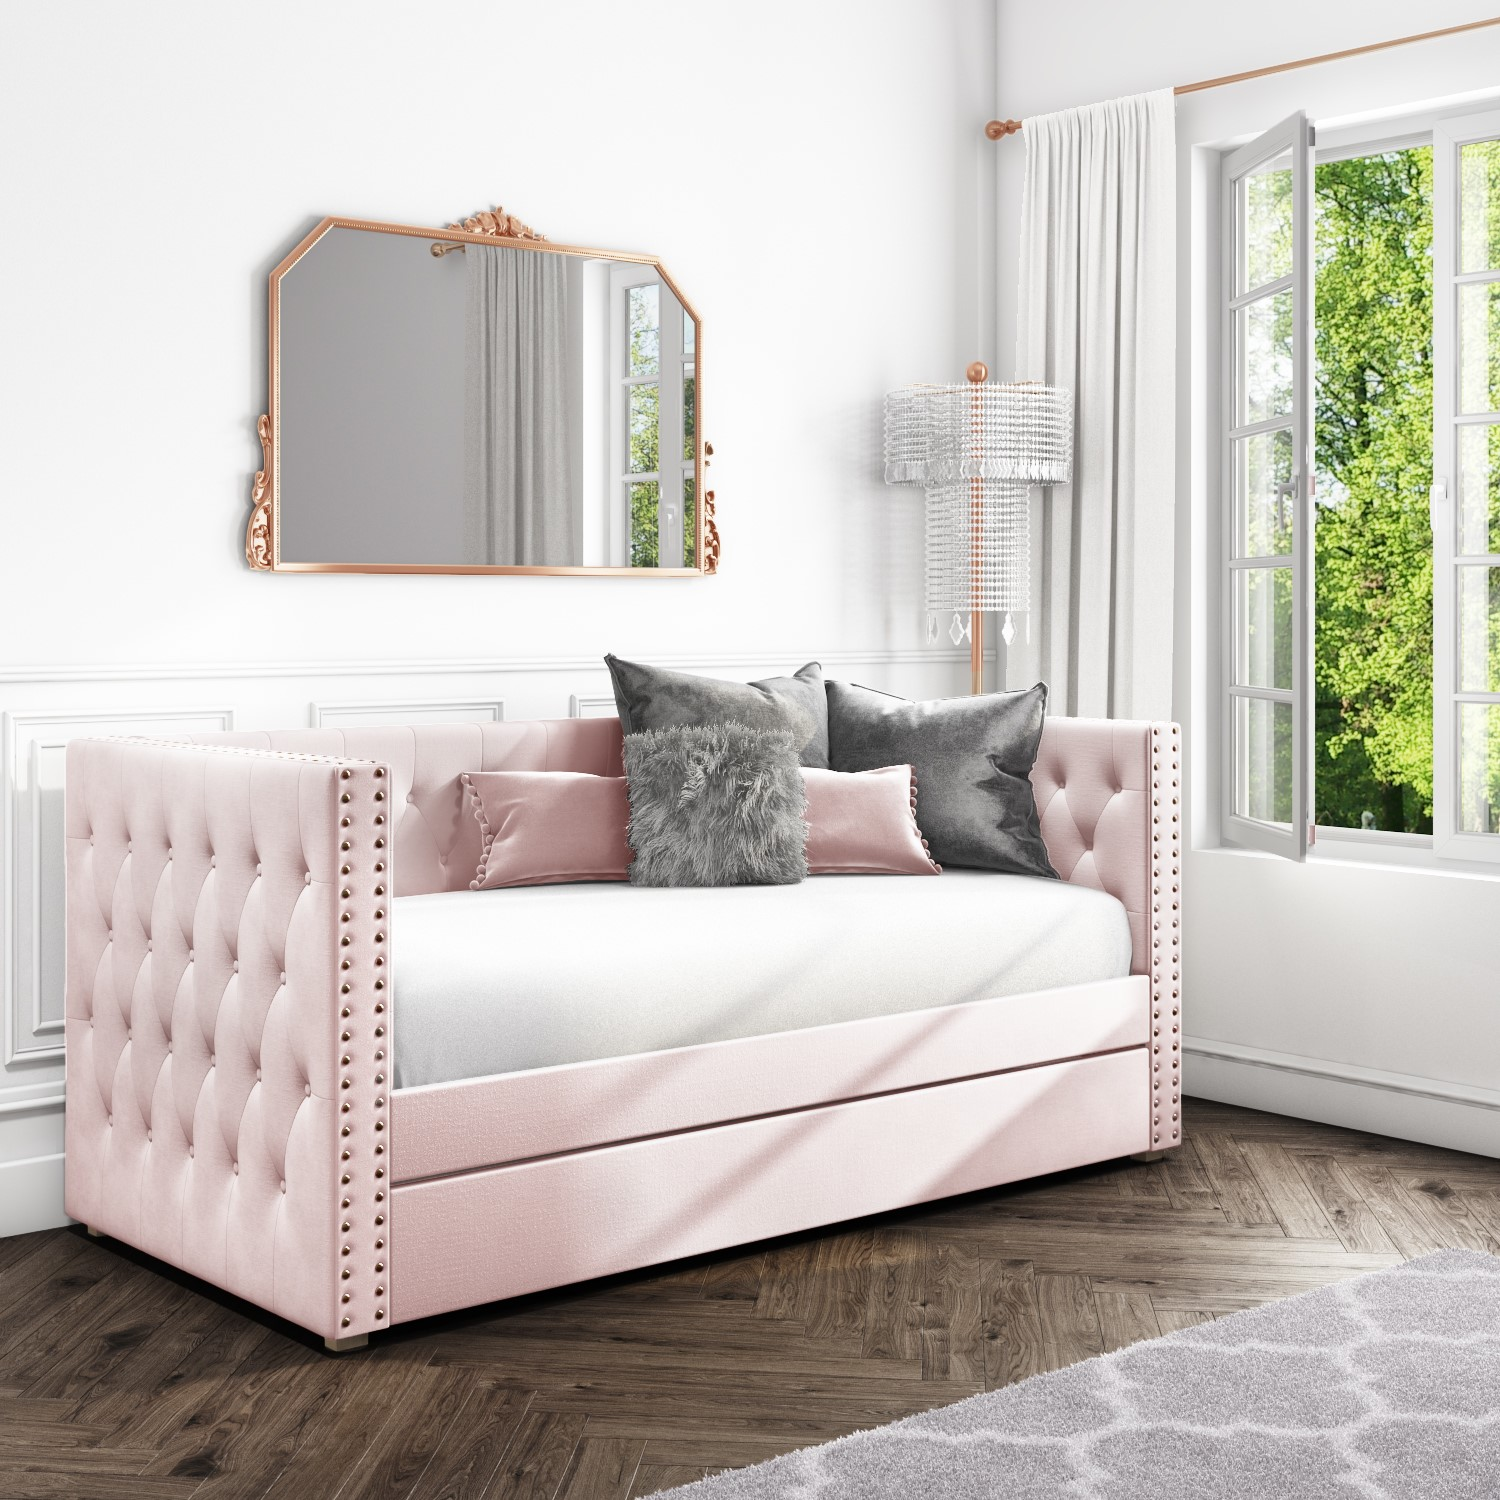 Sacha Velvet Day Bed in Baby Pink - Trundle Bed Included